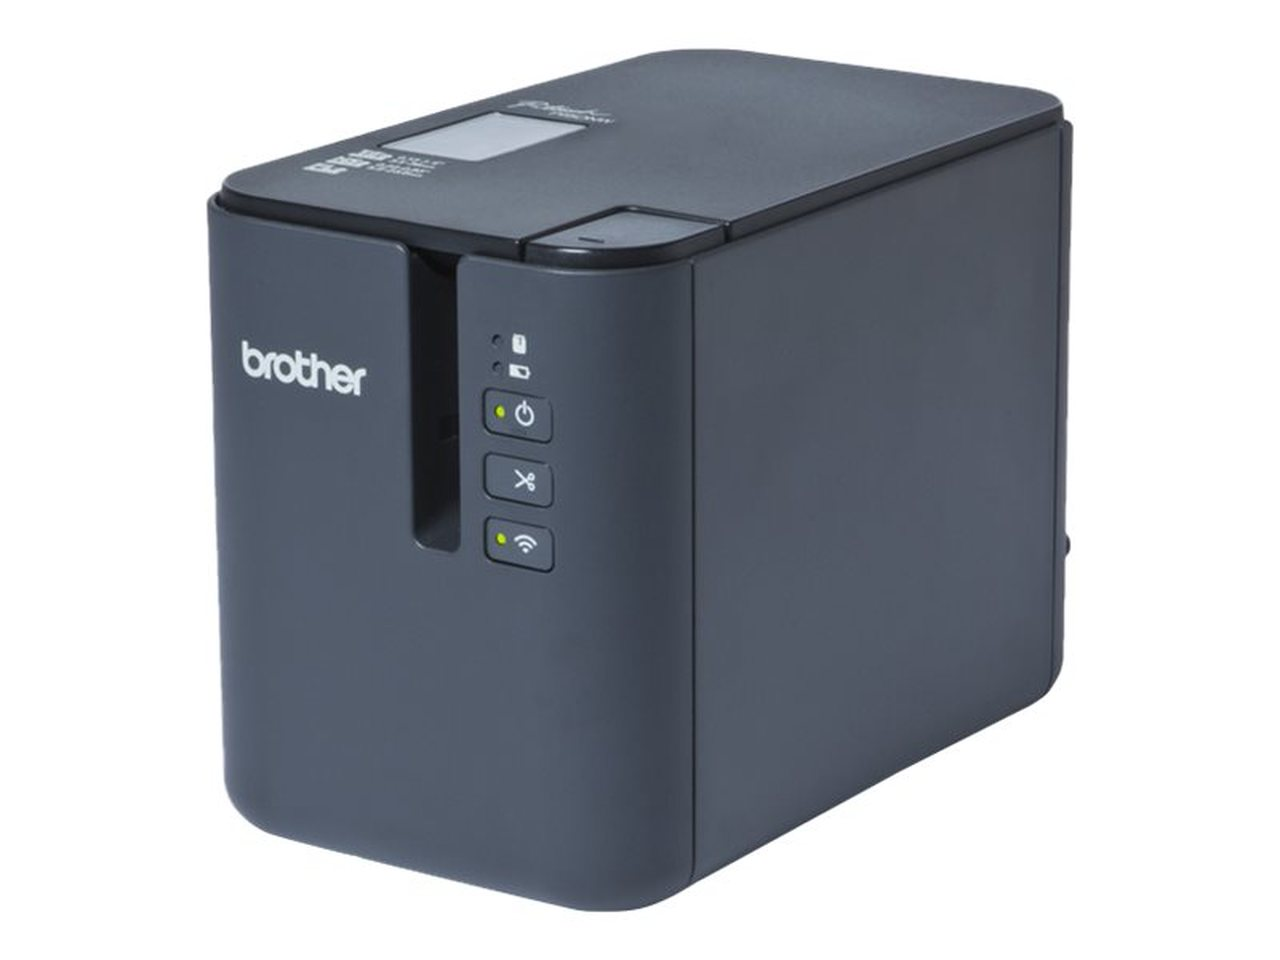 Brother PT-900W ADVANCED PC CONNECTABLE/WIRELESS LABEL PRINTER 3.5-36MM TZE TAPE MODEL